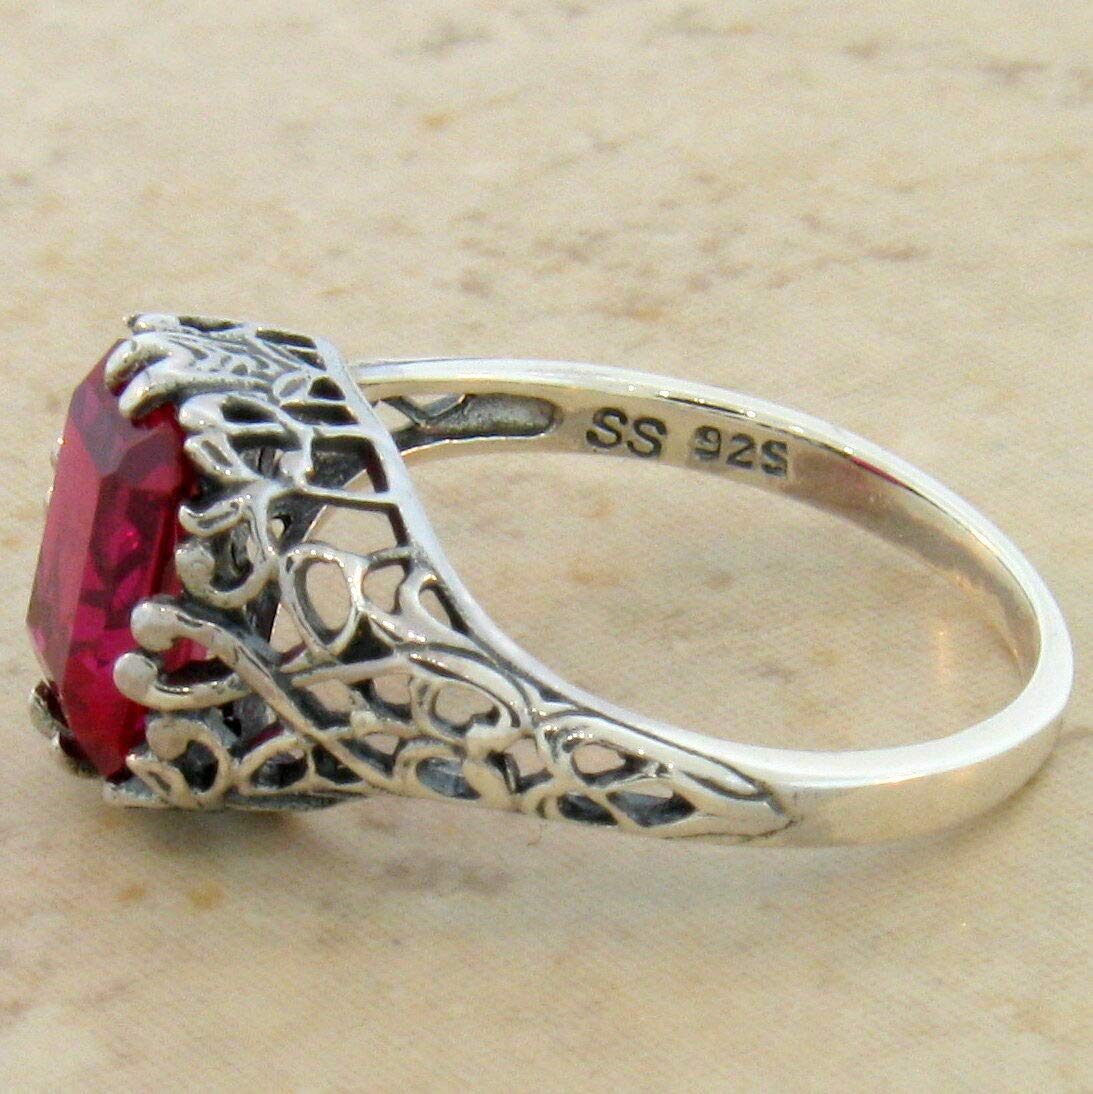 Antique Filigree Design .925 Sterling Silver RED LAB Ruby Ring Size 6.75 KN-4466